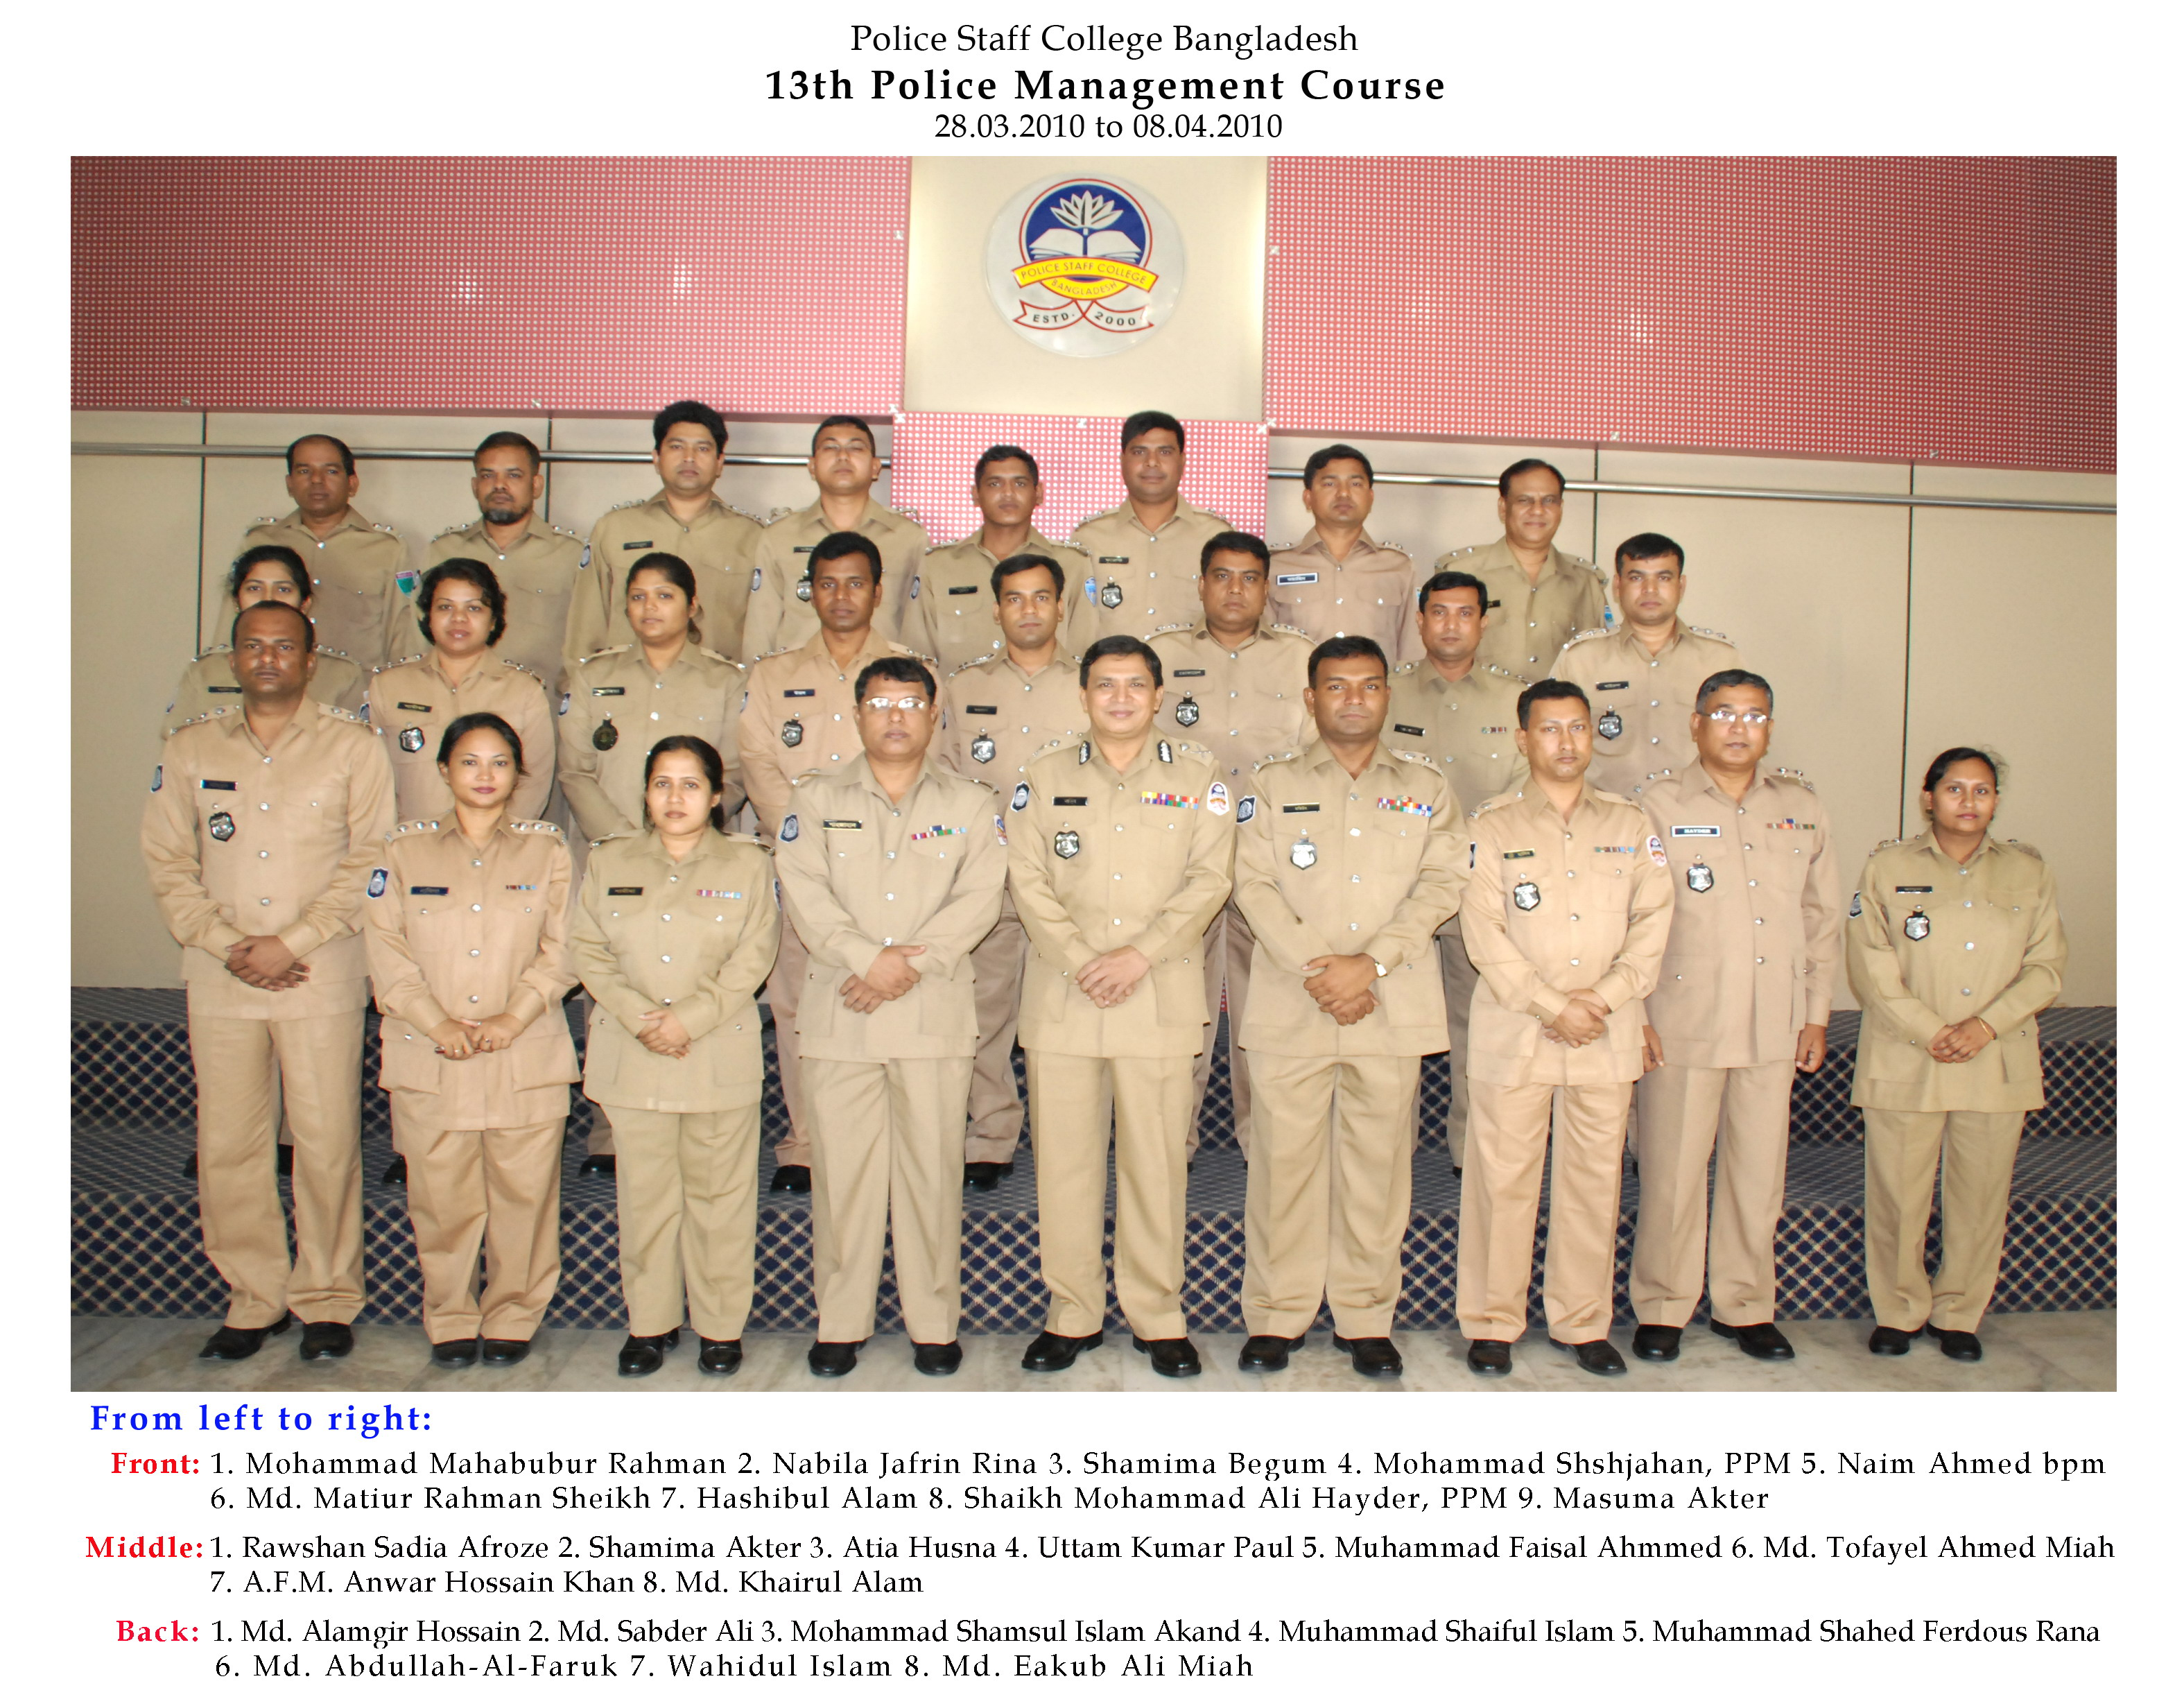 Participant of 13th Police Management Certificate Course.